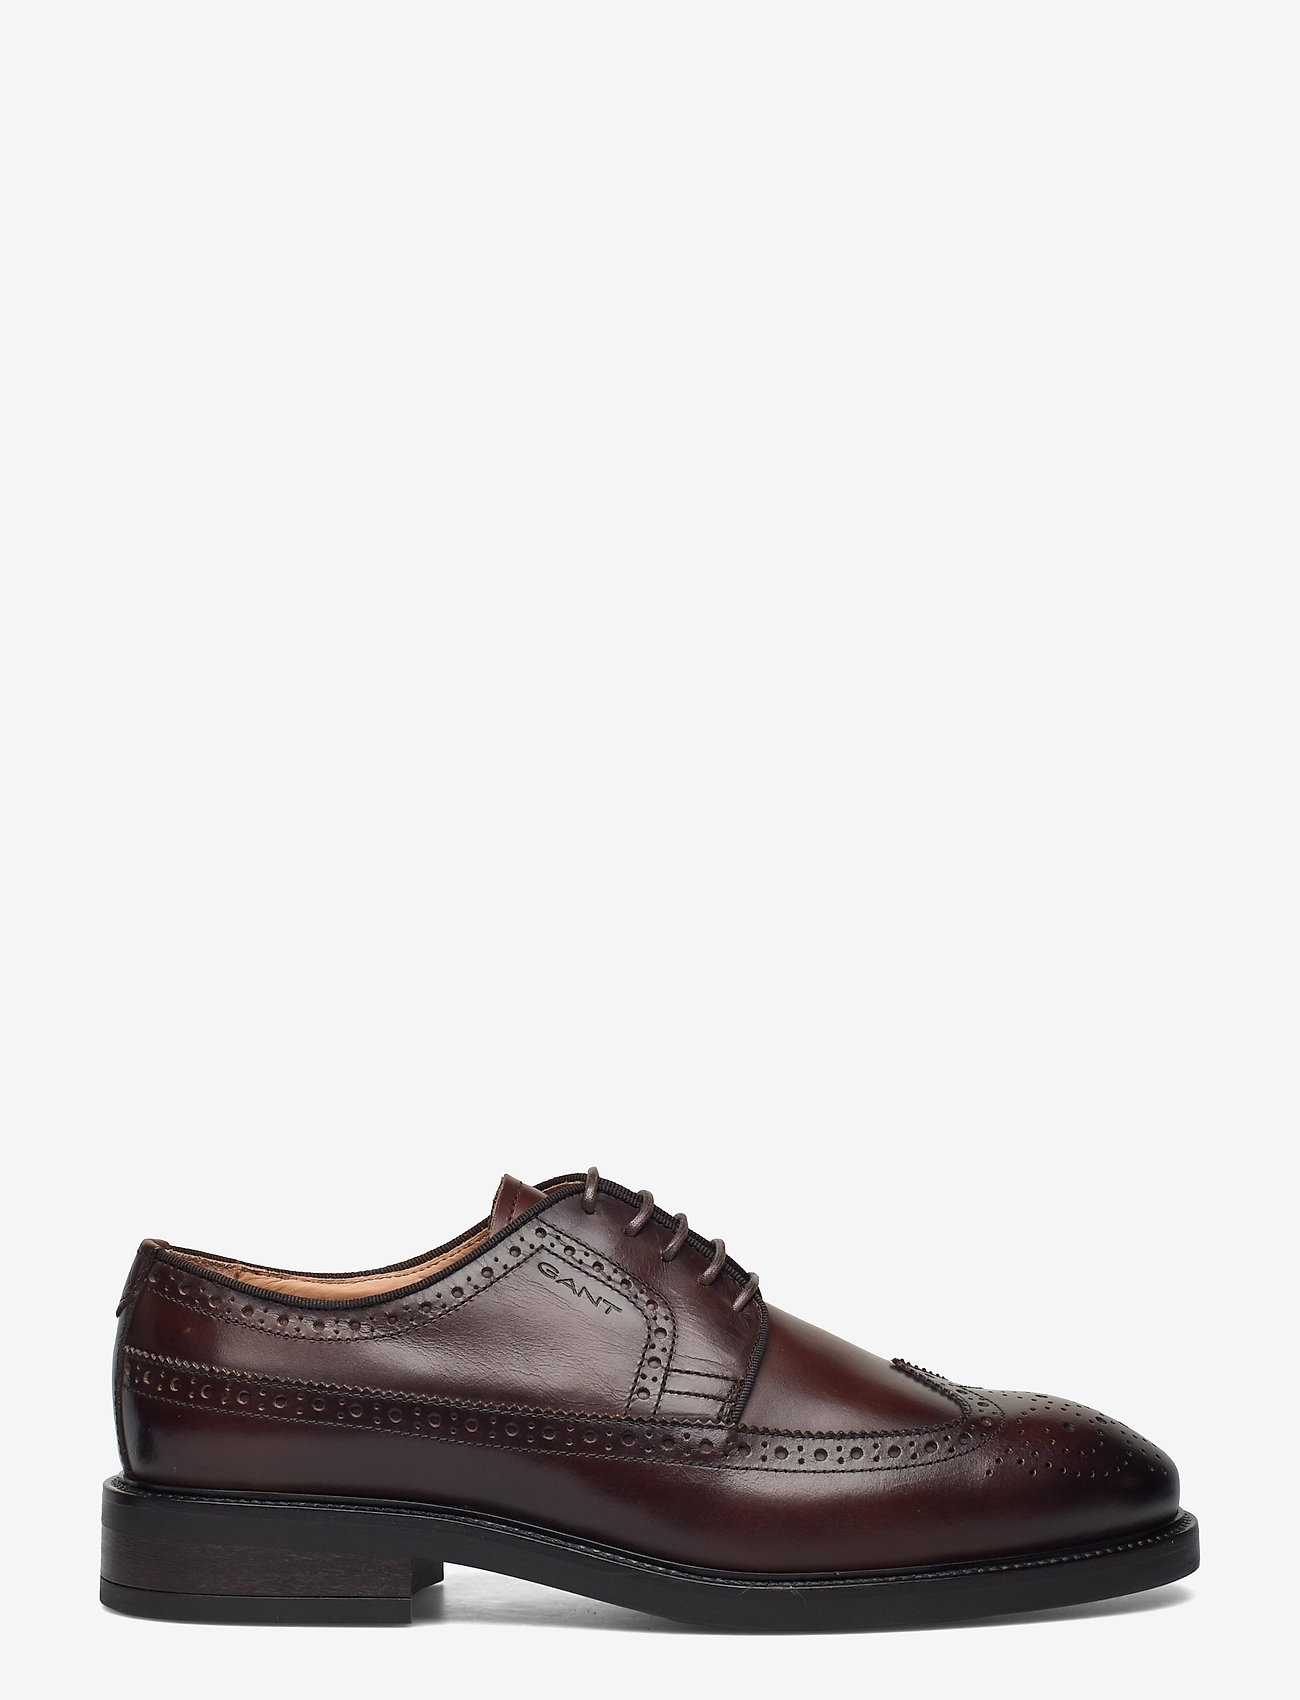 GANT - Flairville Low lace - laced shoes - cognac - 1